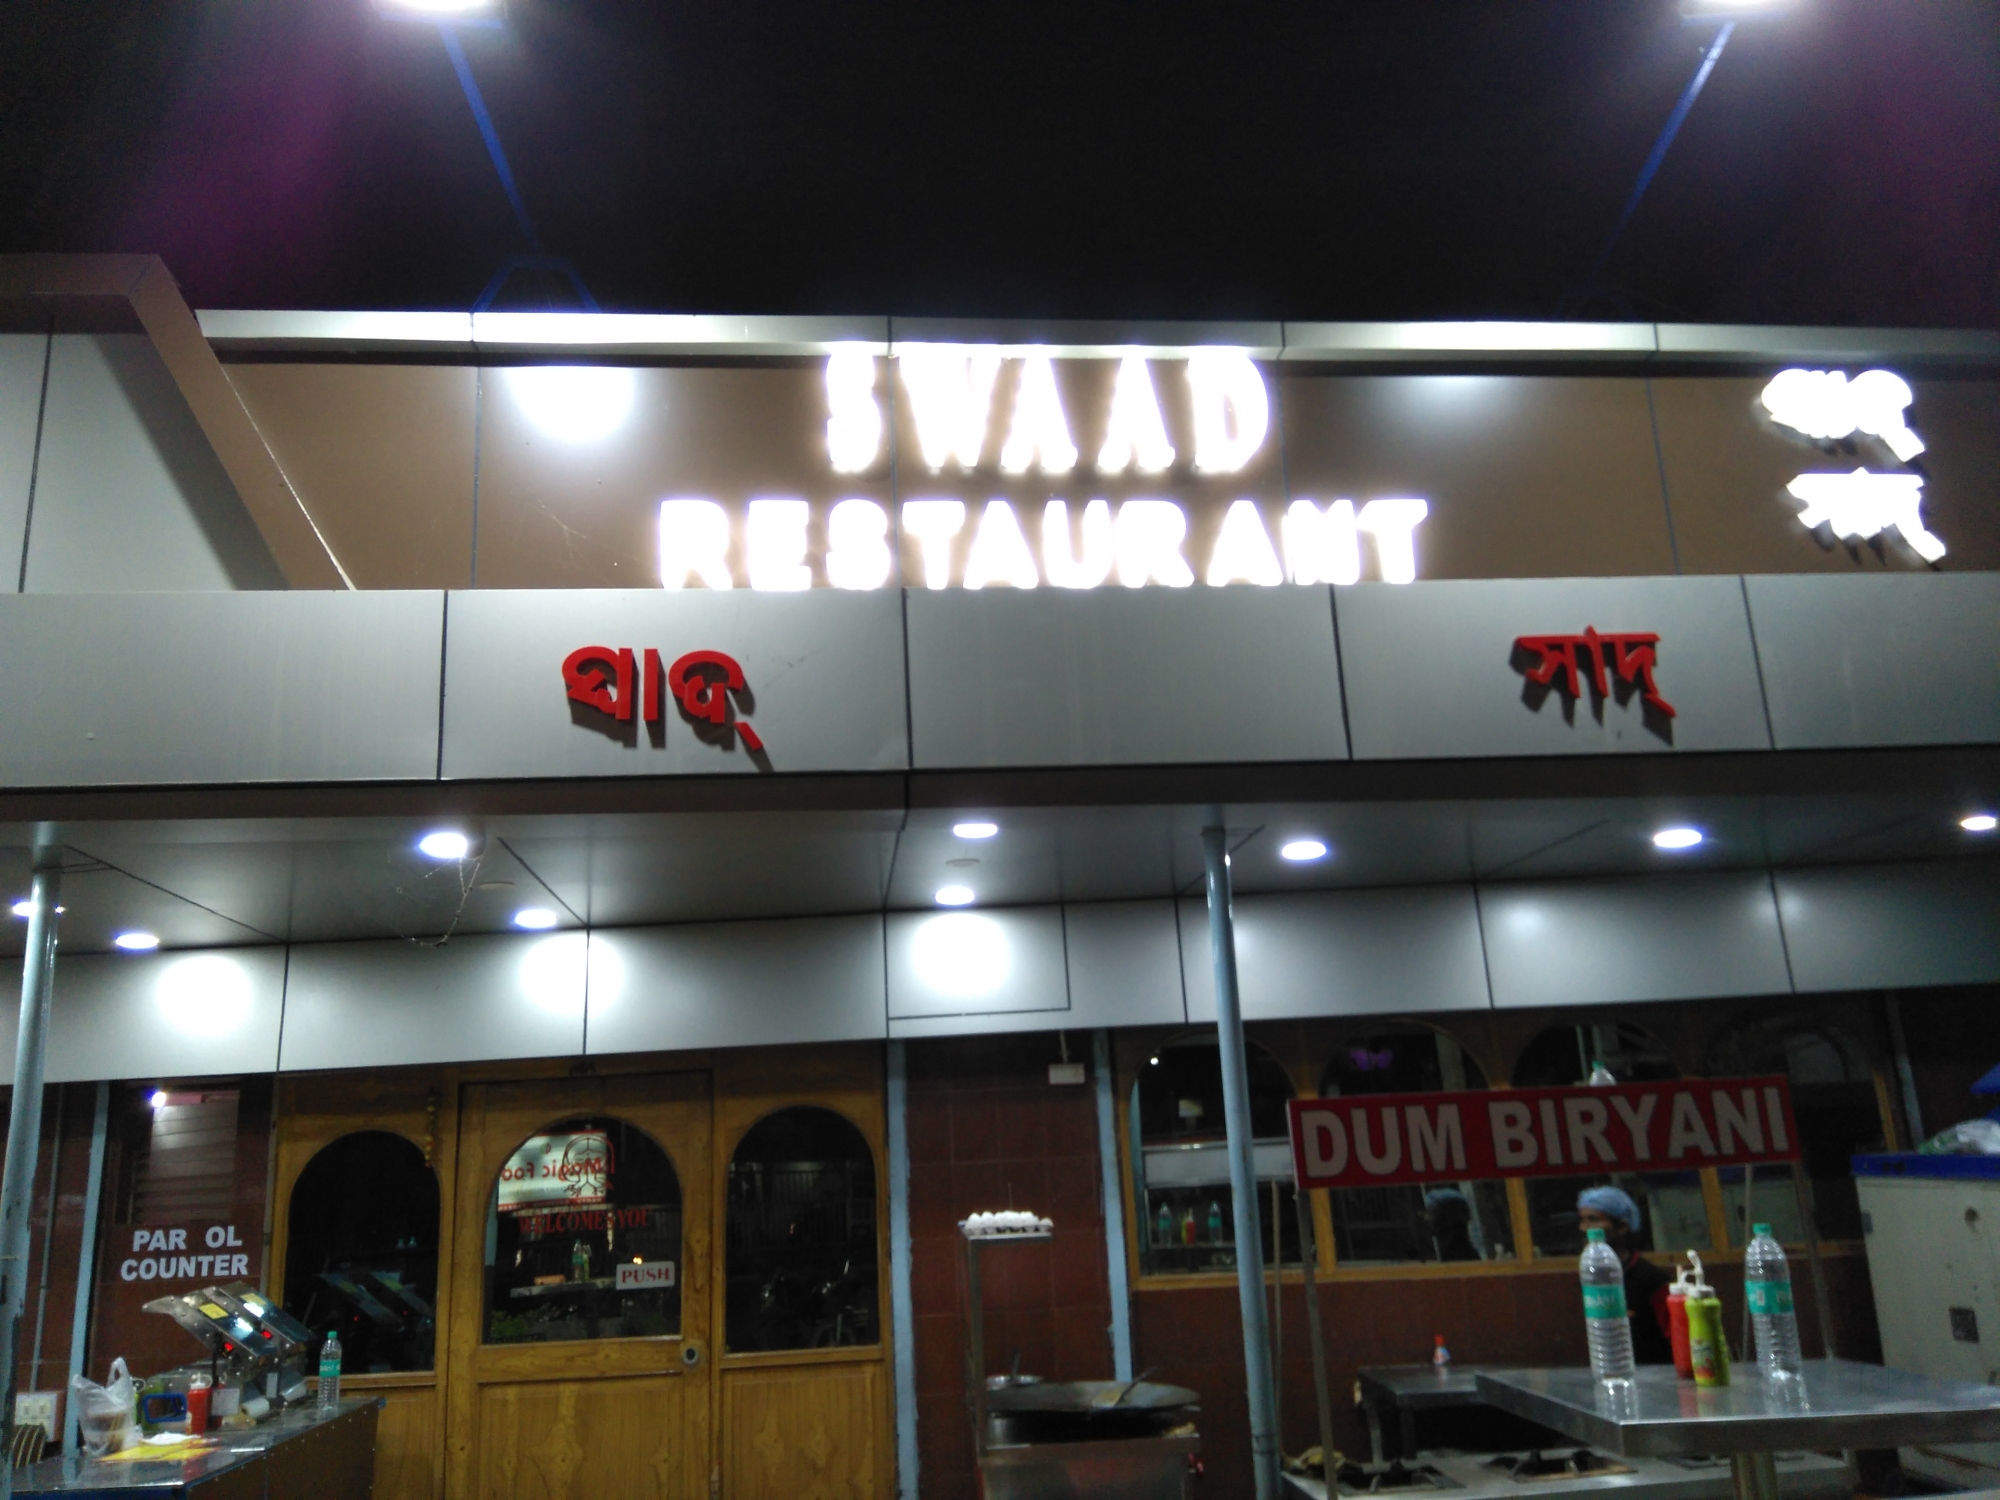 Swad Family Restaurant - Restaurant In Cuttack That One Must Try